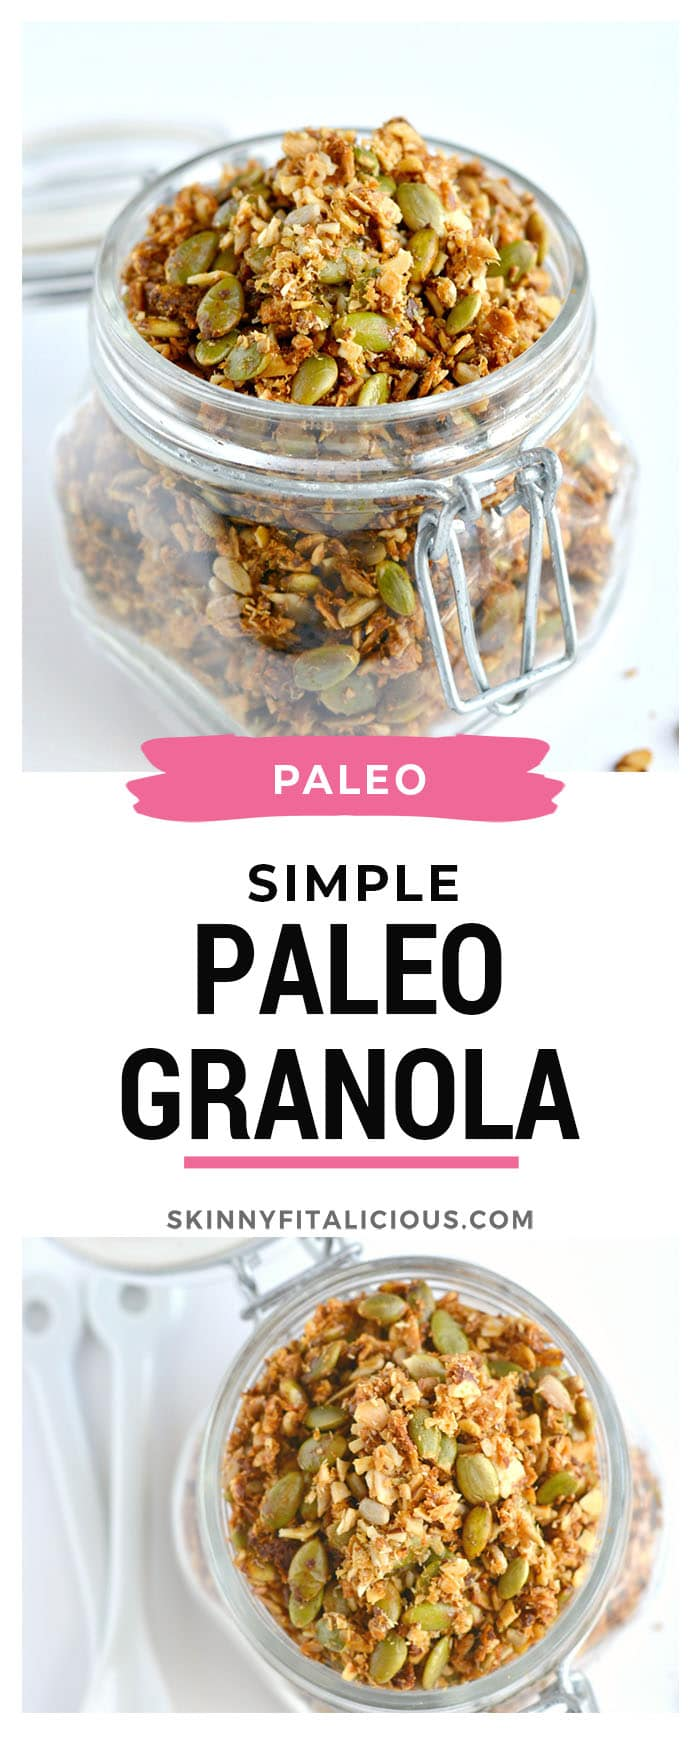 A simple Paleo Granola made of almonds, seeds, shredded coconut and lathered in coconut oil and honey. A nutty and seedy homemade snack that's irresistible and seriously addicting! Gluten Free + Paleo